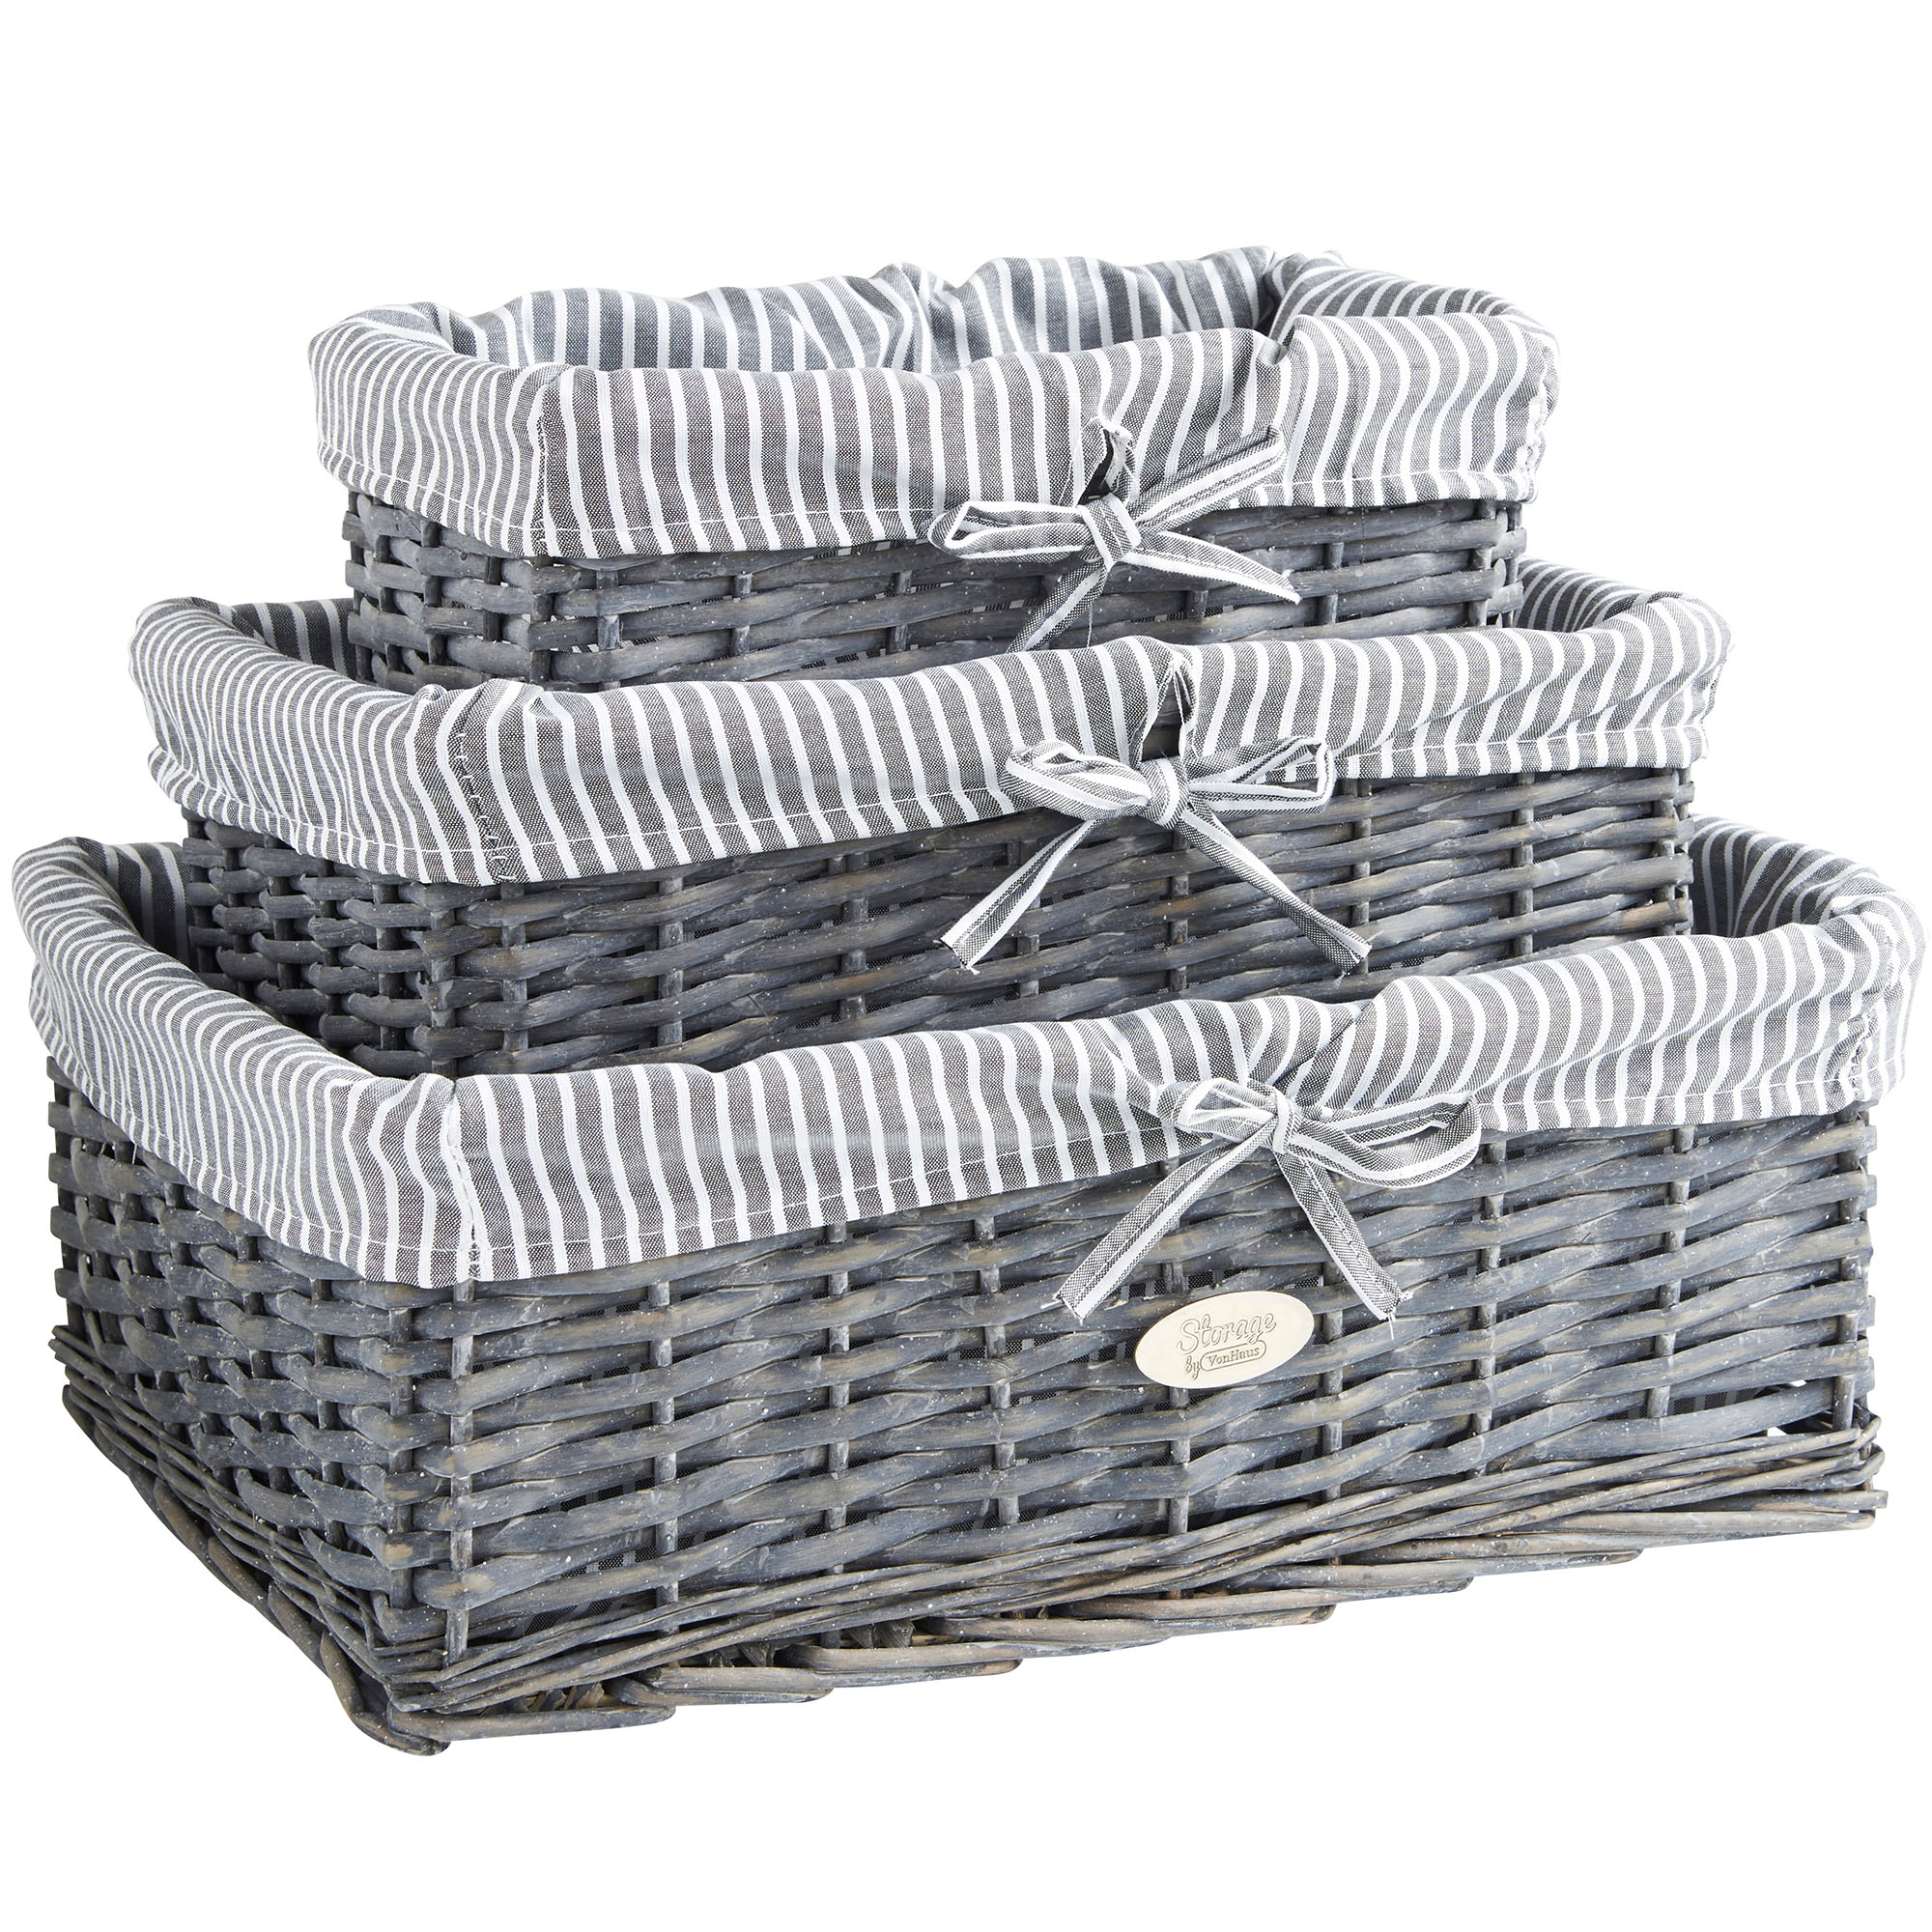 Sentinel VonHaus Set of 3 Grey Wicker Storage Baskets  sc 1 st  eBay & VonHaus Set of 3 Wicker Storage Baskets with Removable Stripe Fabric ...